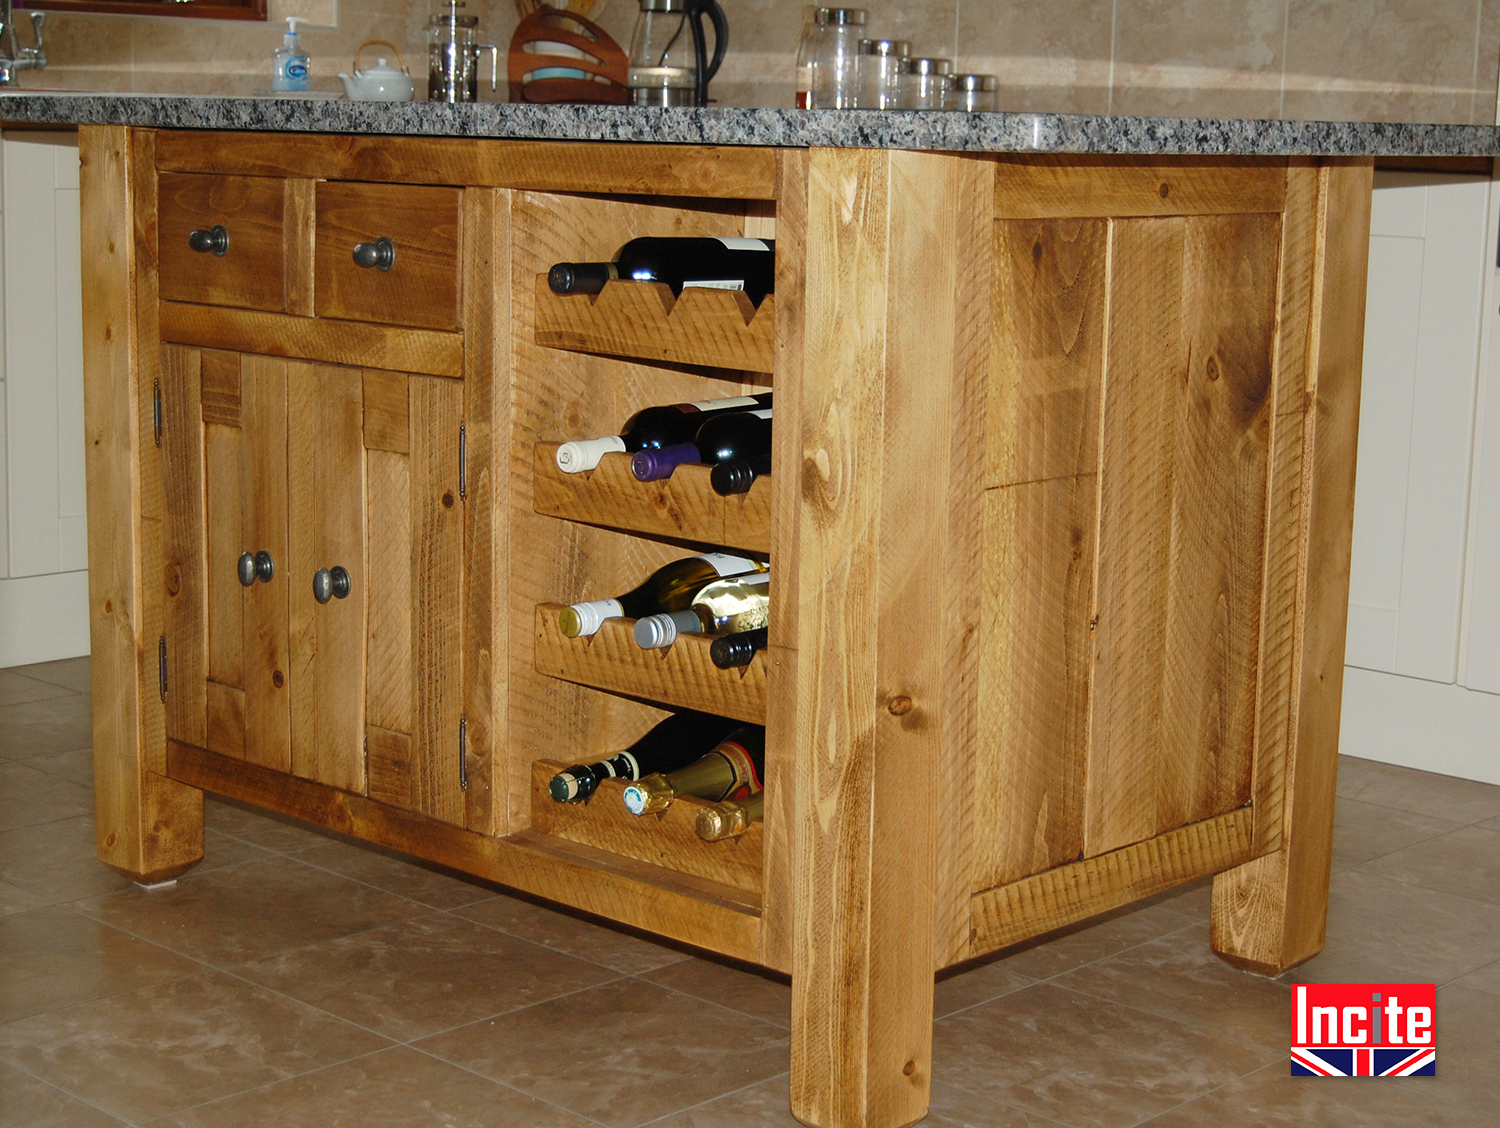 kitchen islands uk outdoor modules handcrafted rustic solid wooden by incite